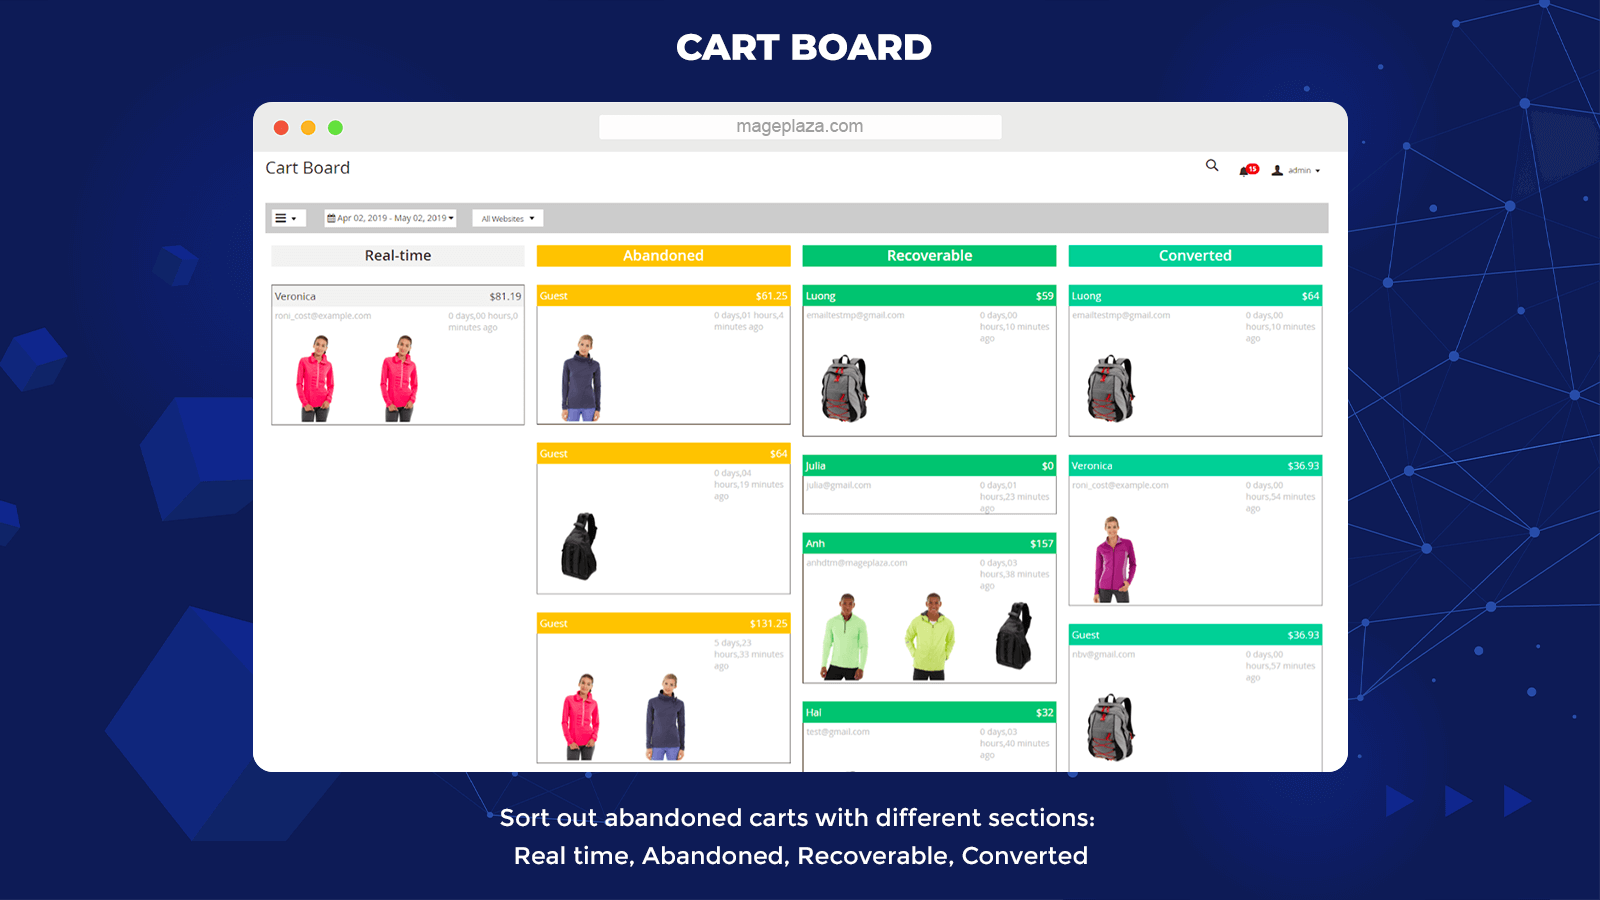 magento 2 Abandoned Cart Board